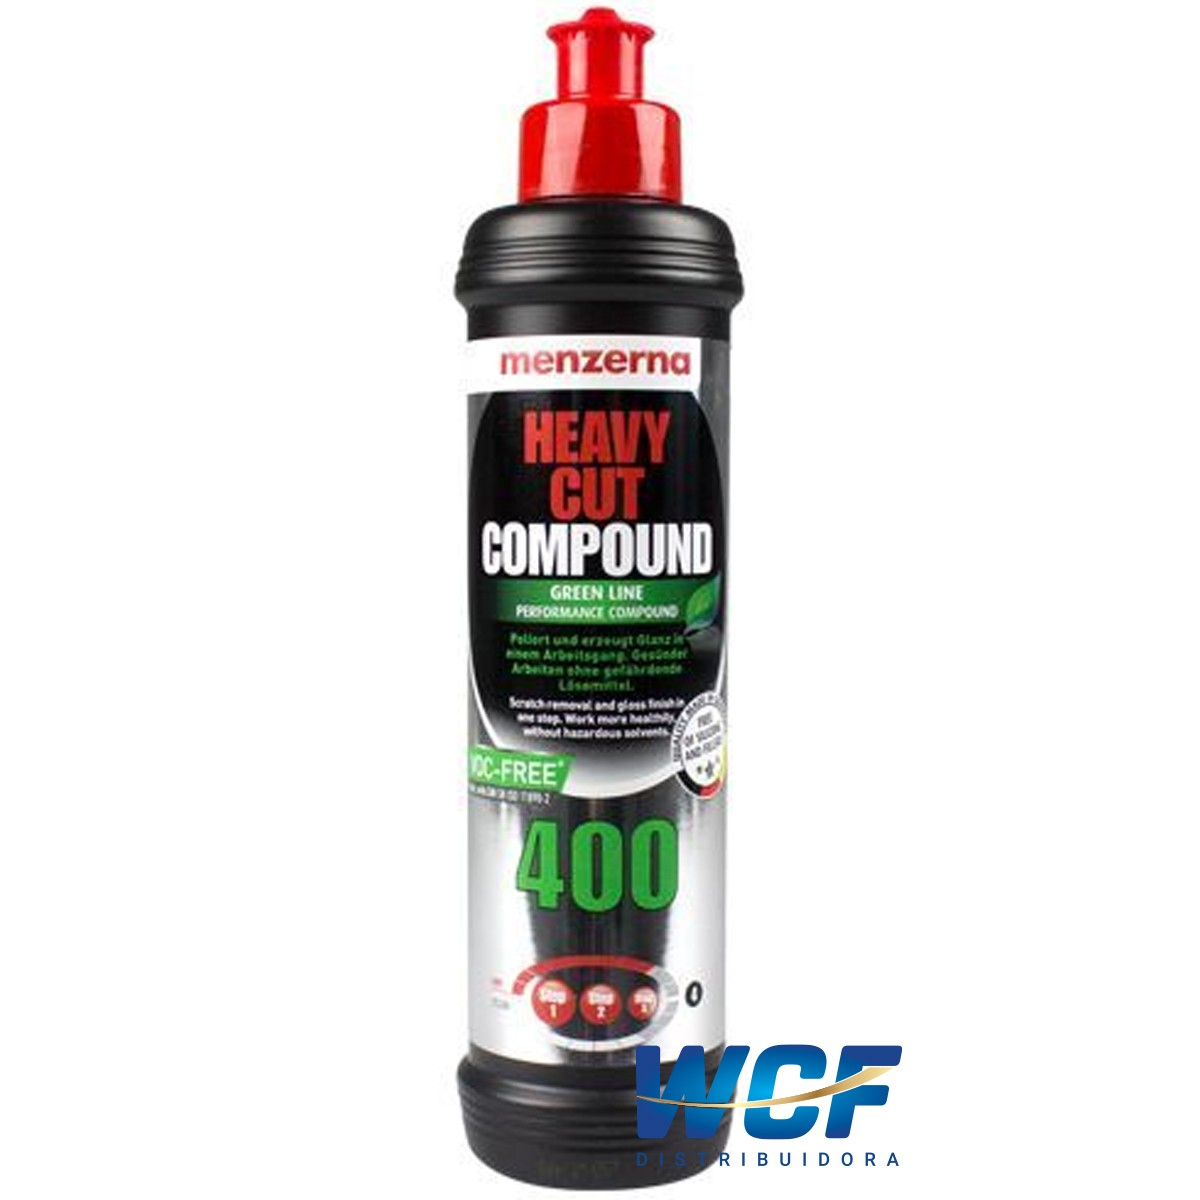 HEAVY CUT COMPOUND GREEN LINE 400 250ML MENZERNA